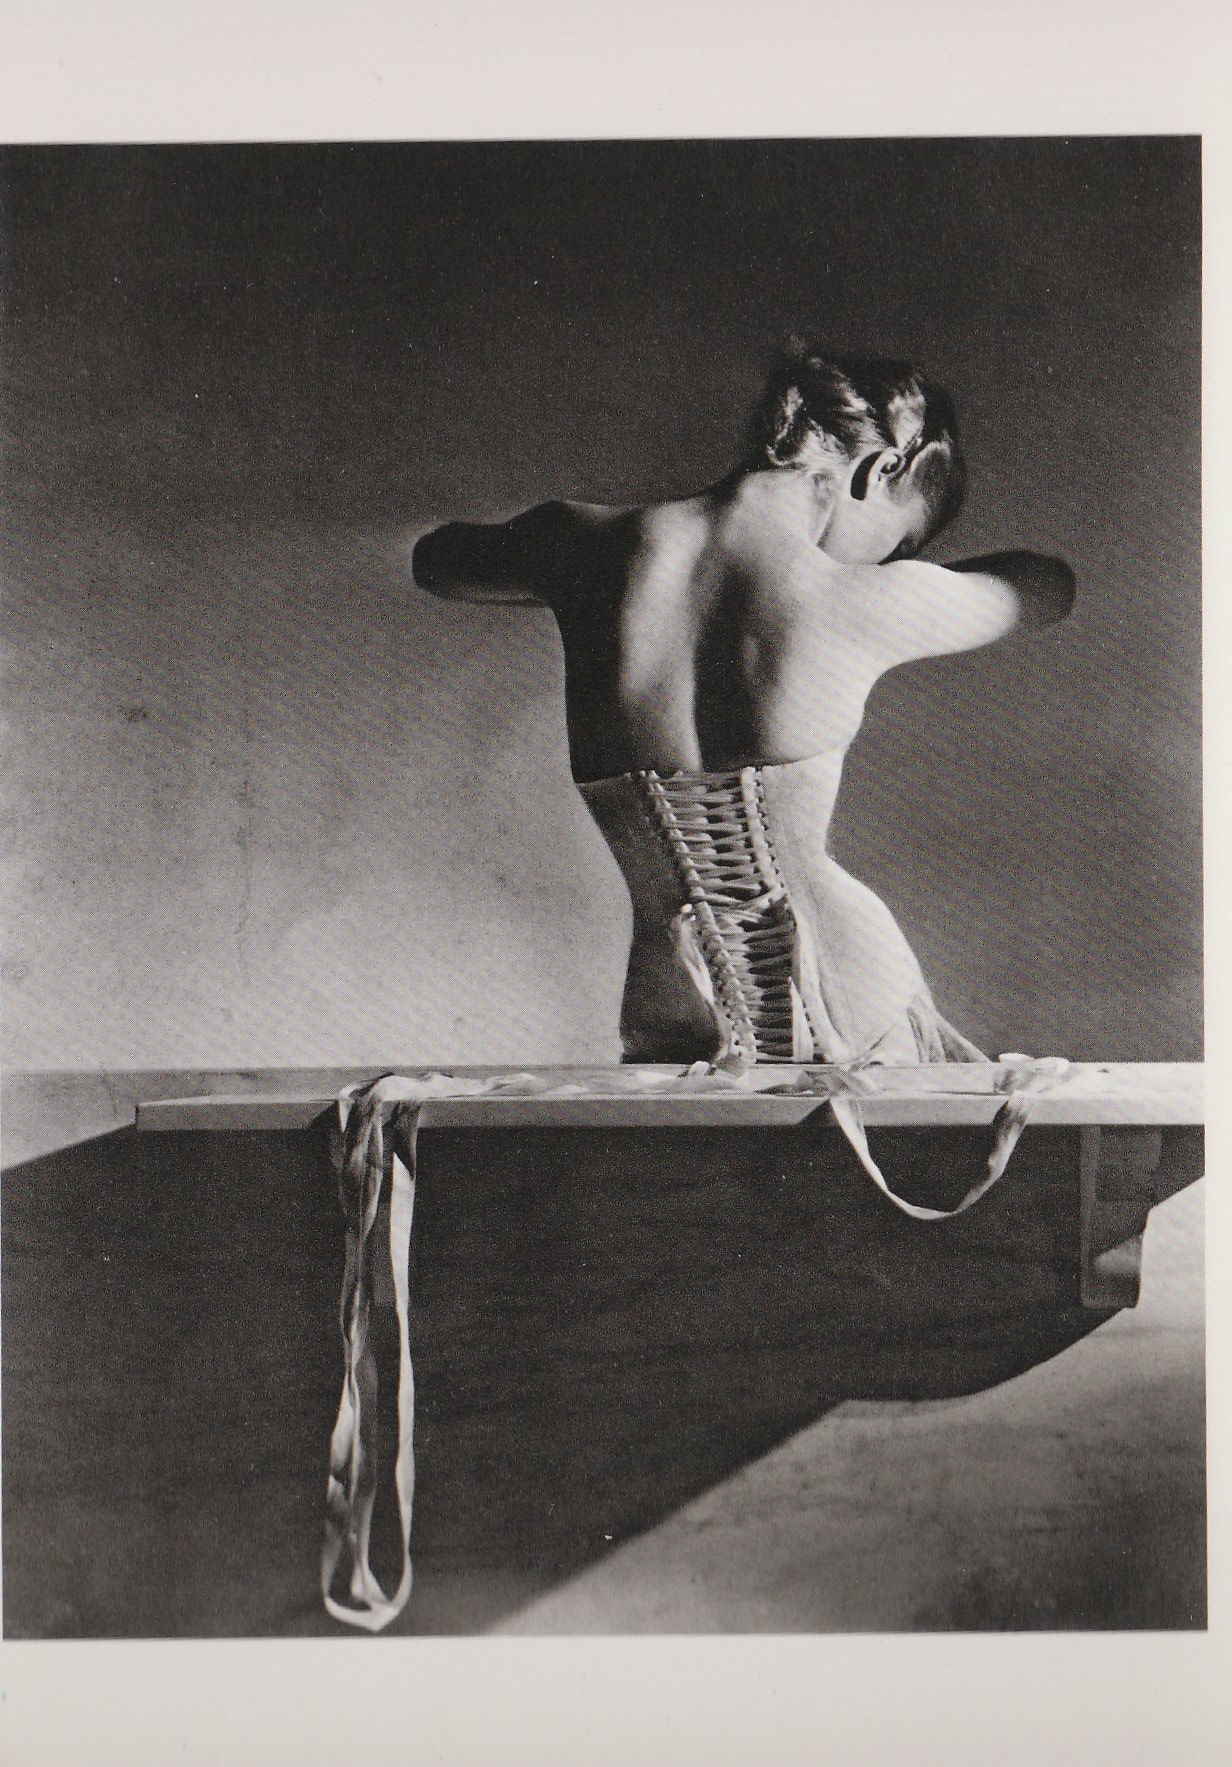 Photo: Horst Corset Postcard by    Michelle B.    Licensed under CC Attribution-NoDerivs 2.0 Generic (CC BY-ND 2.0).